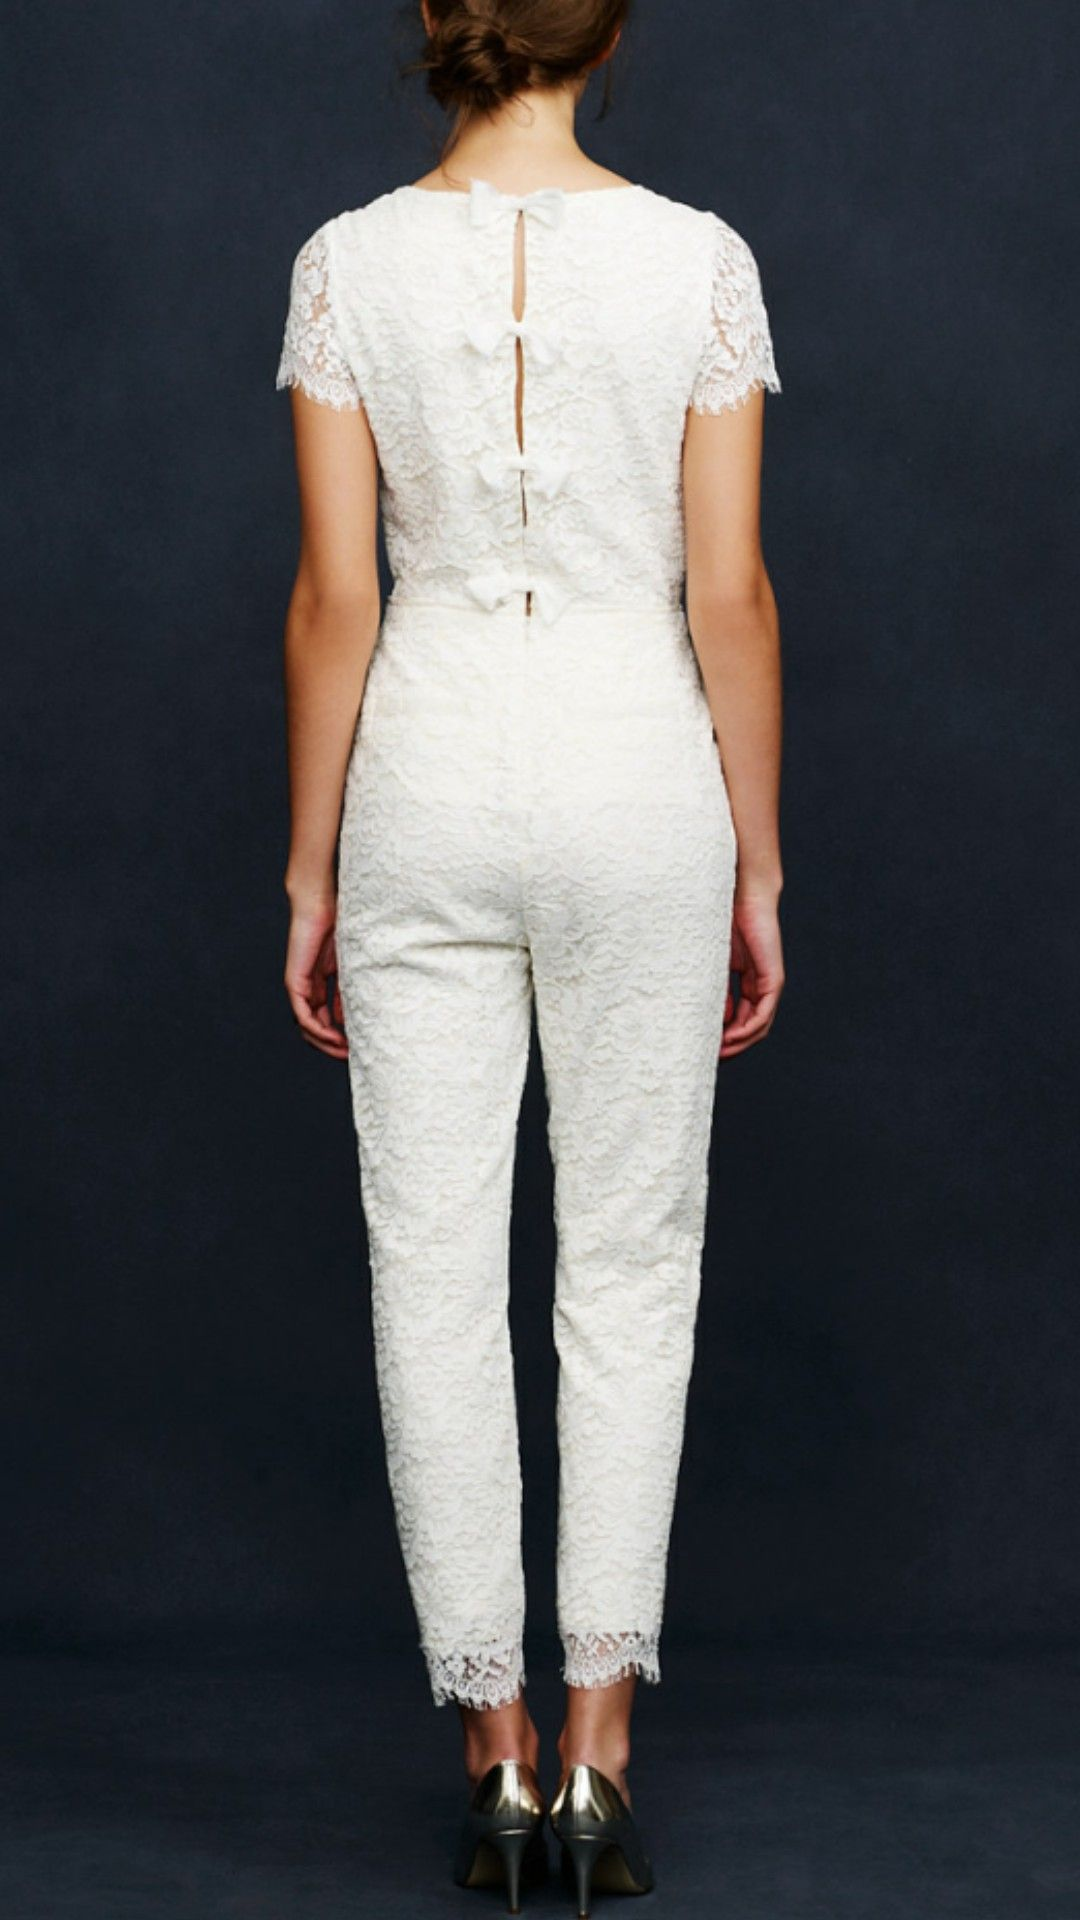 J Crew Eyelash Lace Jumpsuit Used Wedding Dress On 42 Off